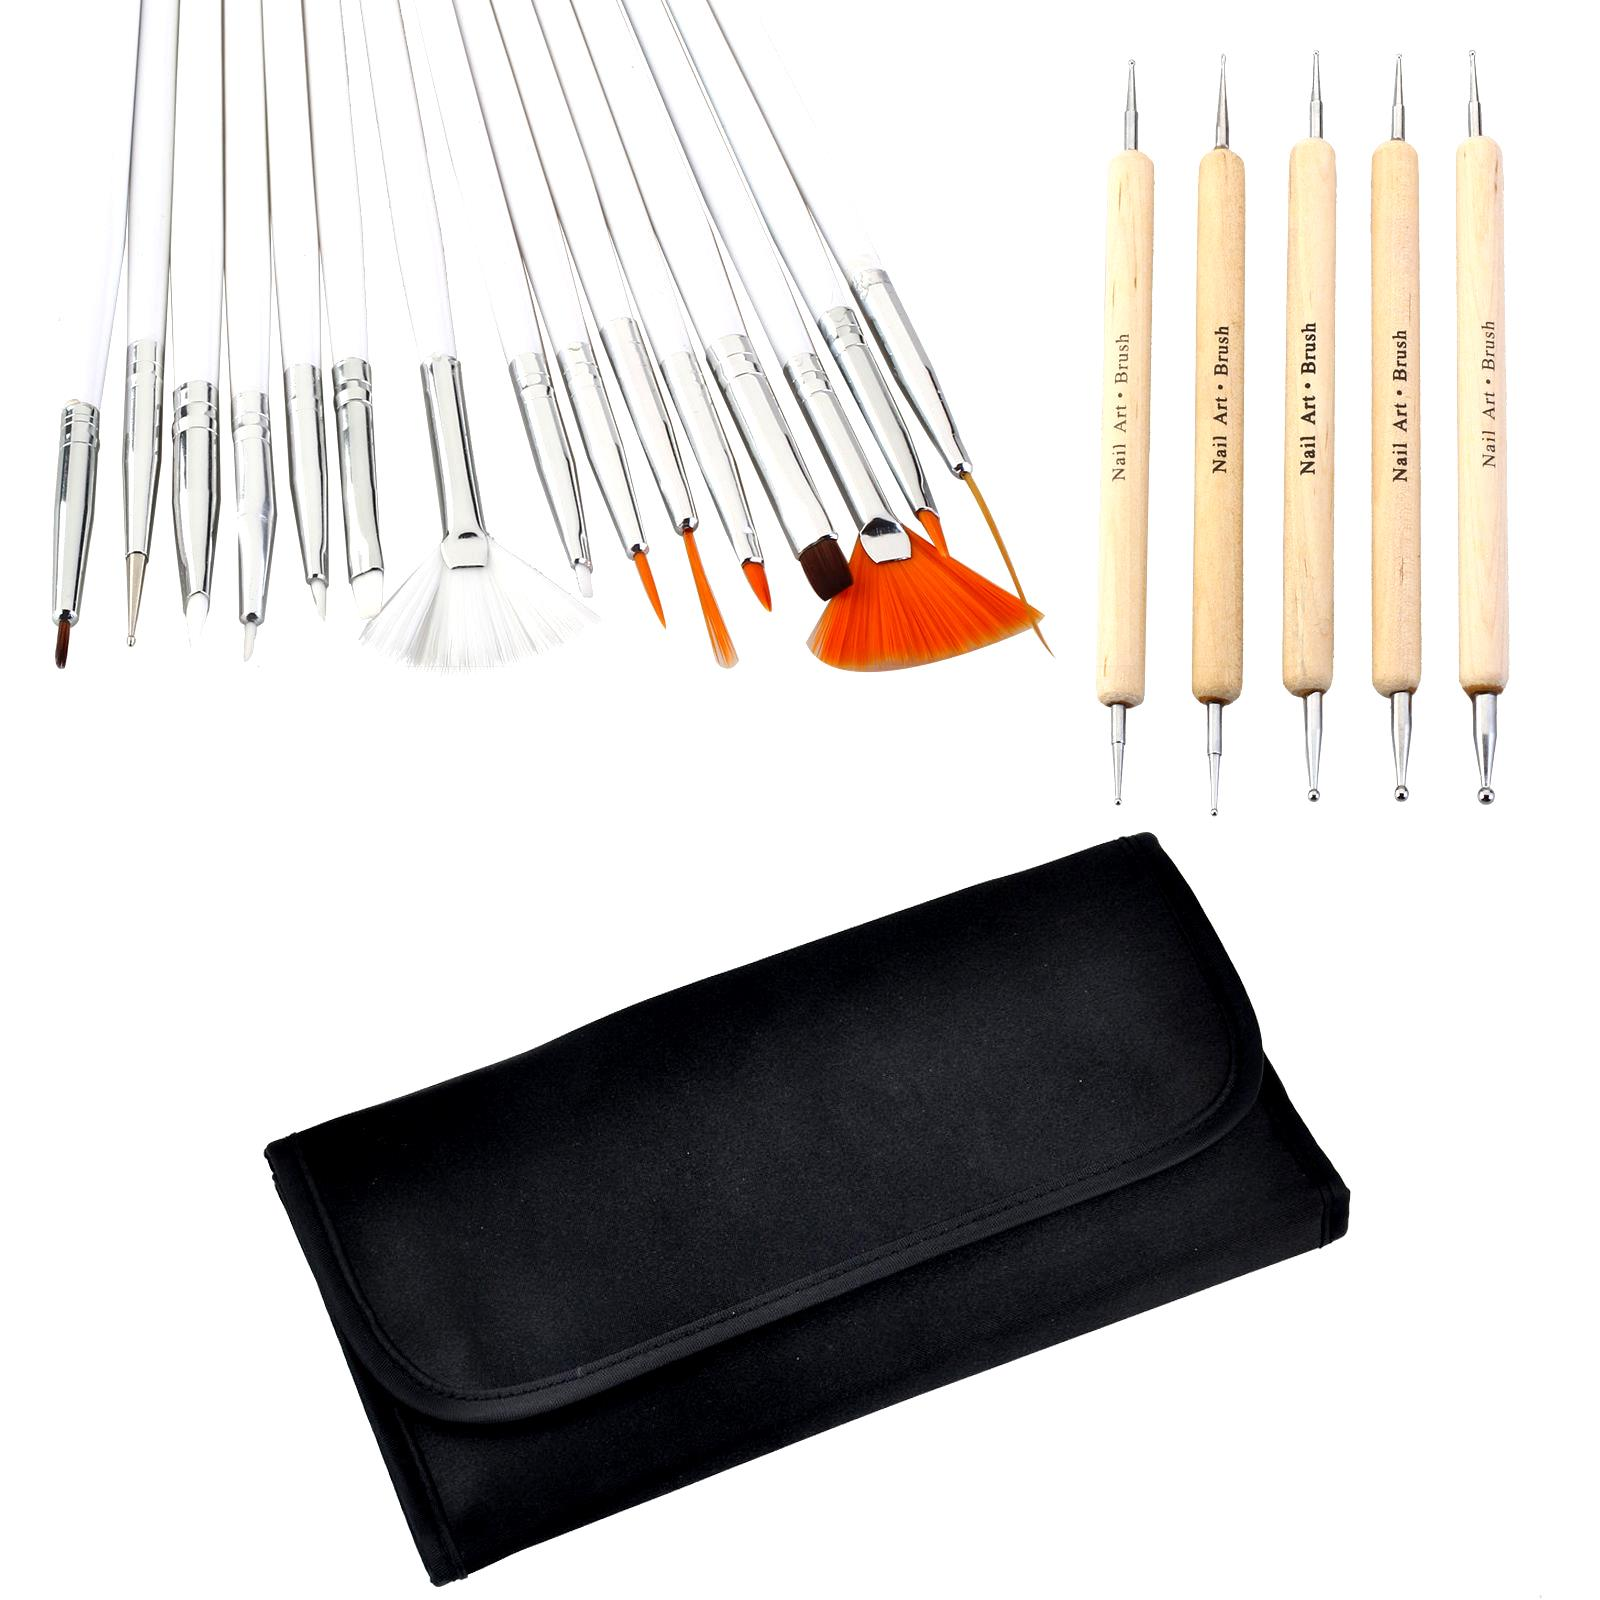 Pull nail kit phototherapy hook flower drill 20 a full set of Manicure beginners pen brush painting gradient